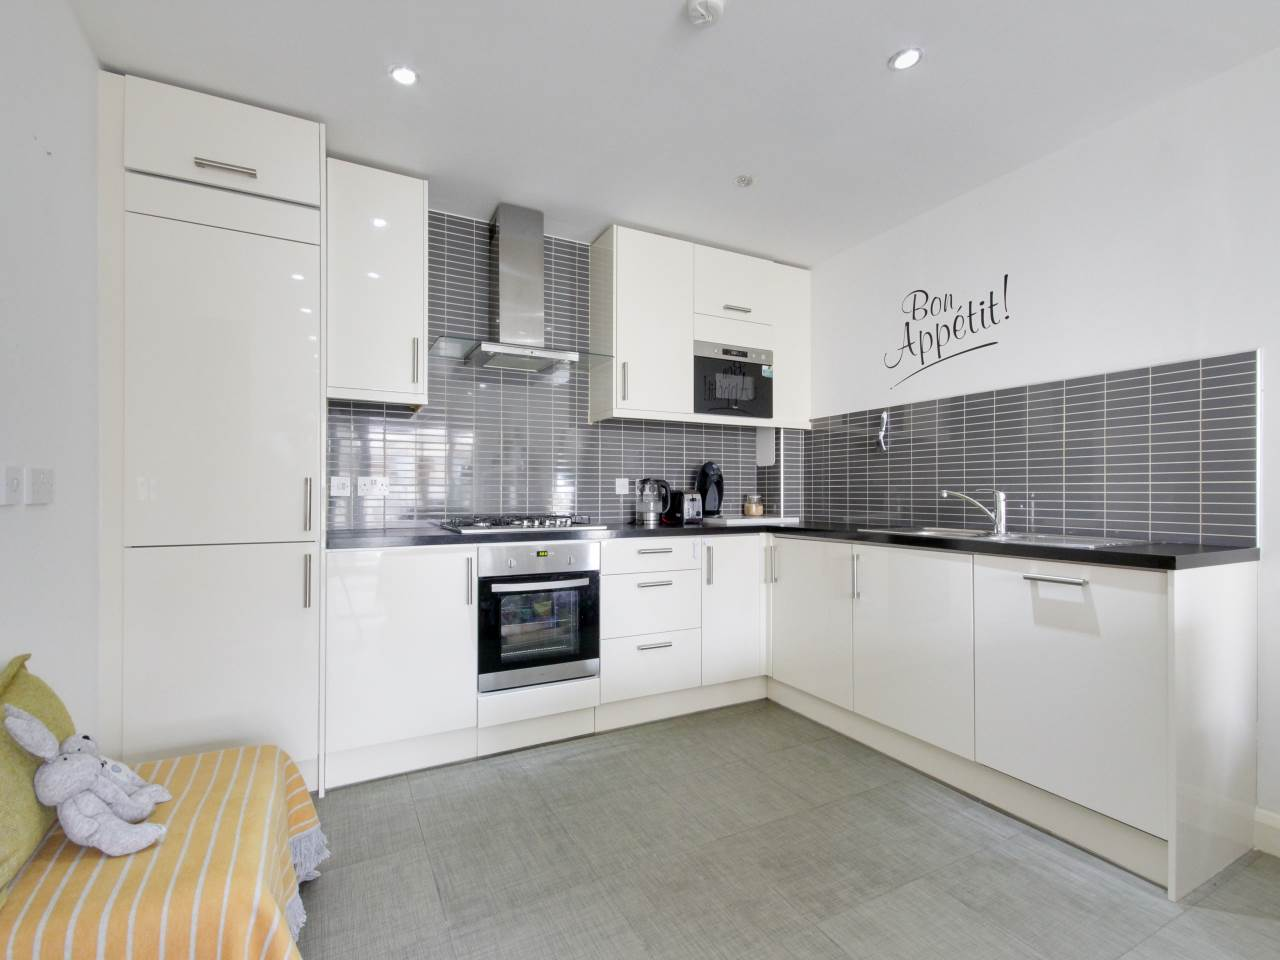 2 bed flat for sale in Wanti Terrace , Chigwell , IG7